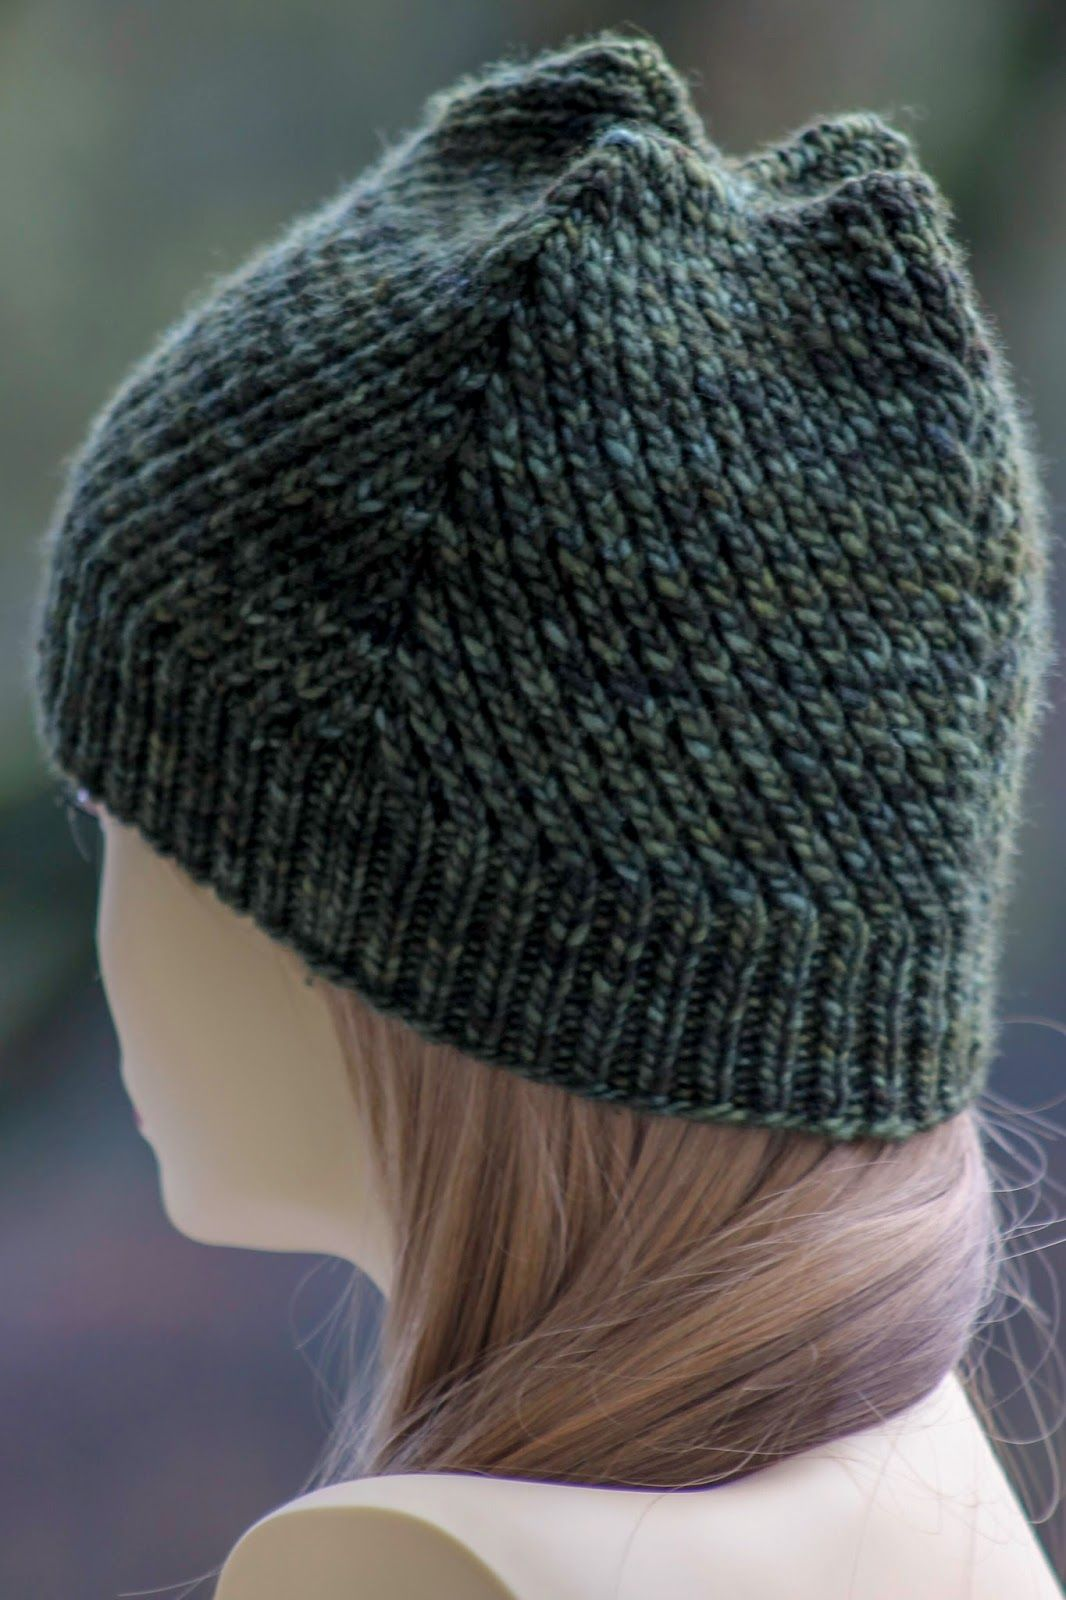 Four Winds Hat | Pinterest | Knitting patterns, Patterns and Knit ...